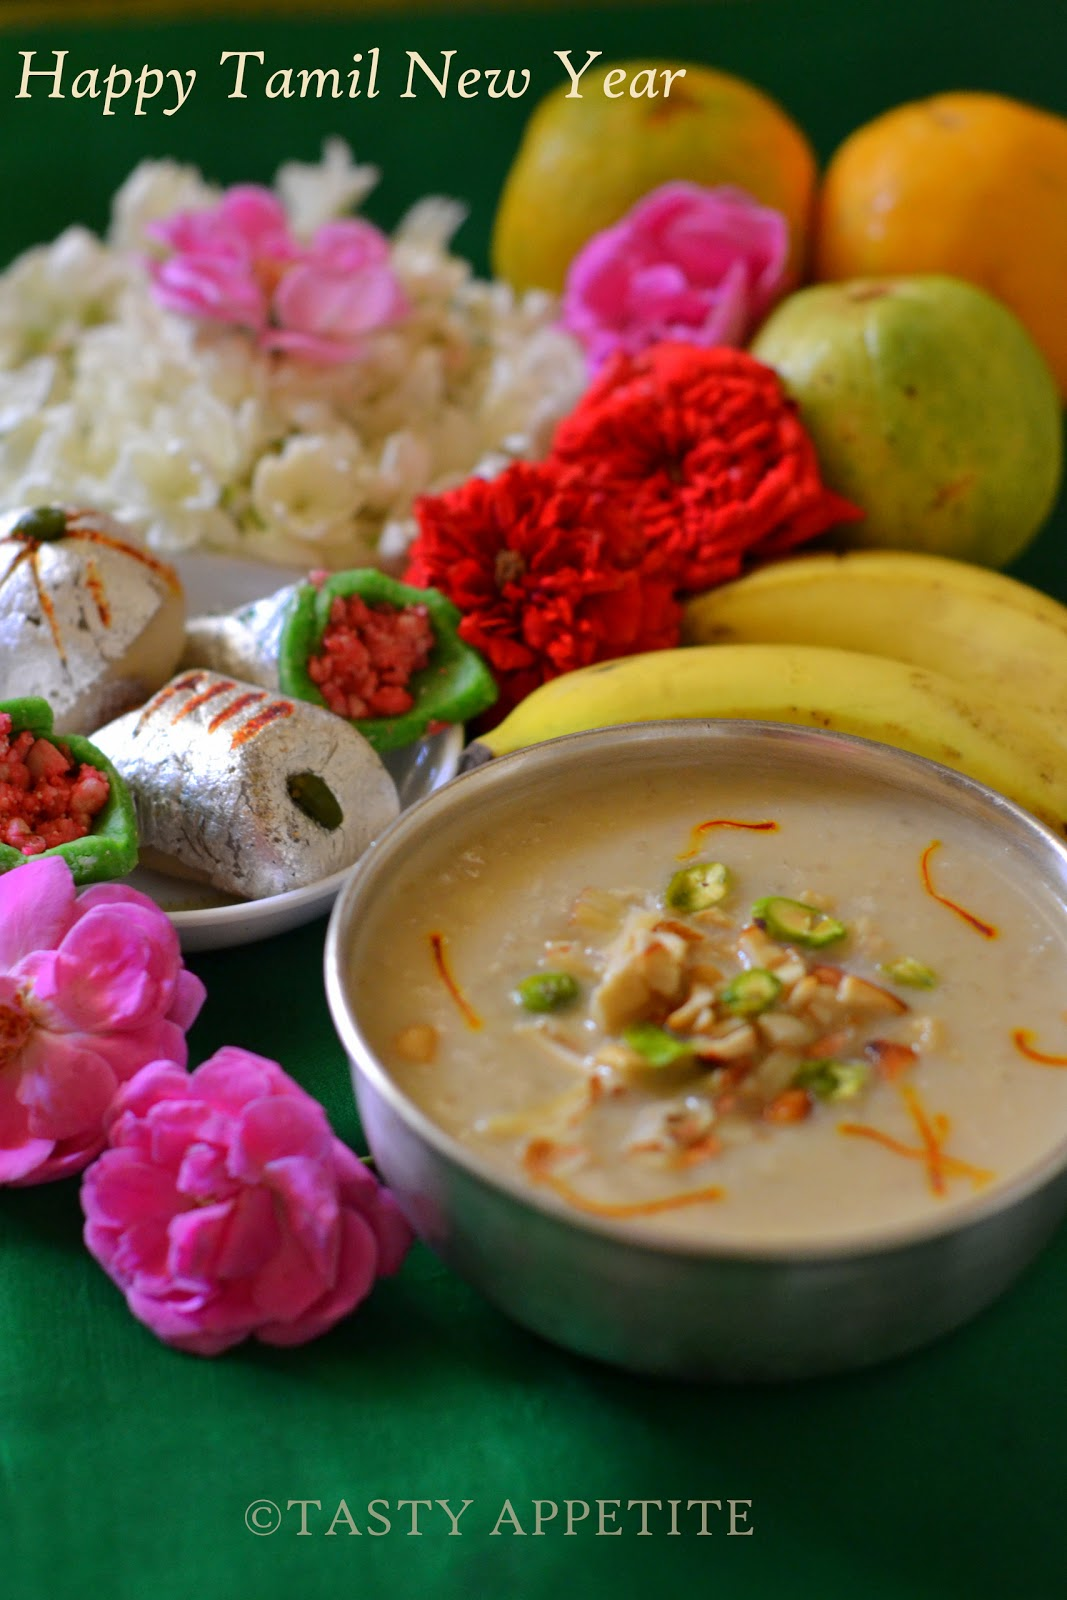 Happy tamil new year vishu new year special recipes coconut happy tamil new year vishu new year special recipes coconut milk payasam forumfinder Images